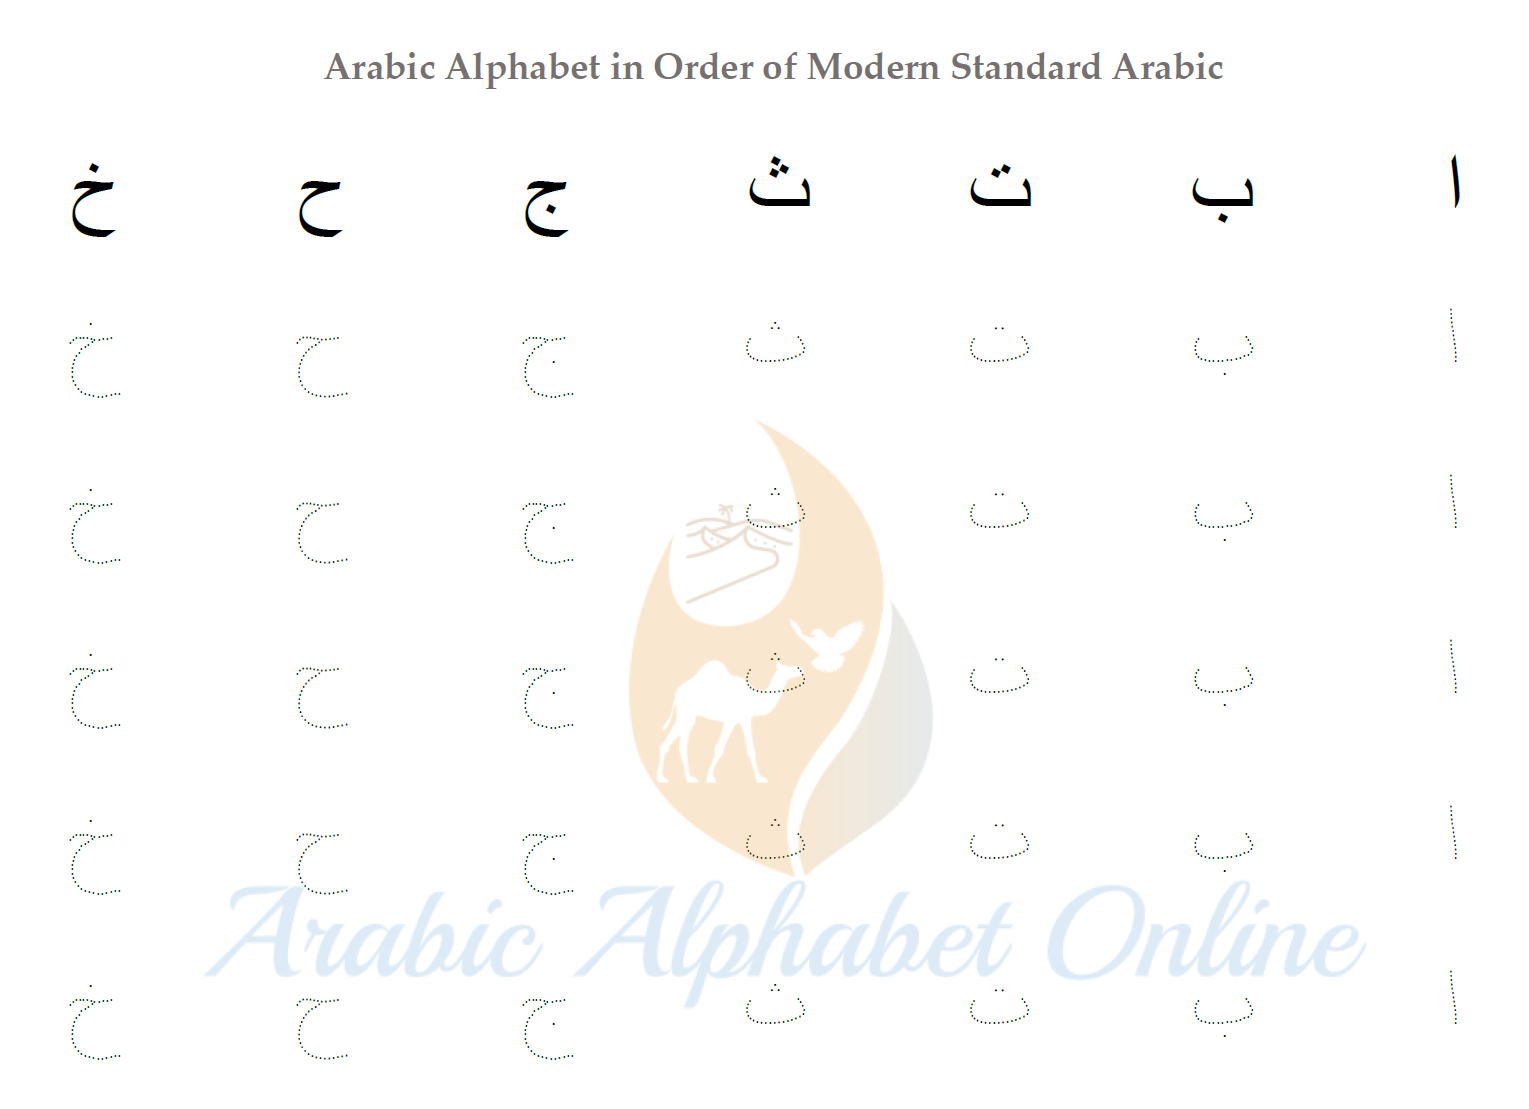 Arabic Alphabet Tracing Worksheets | Arabic Alphabet Online pertaining to Tracing Alphabet Letters Online